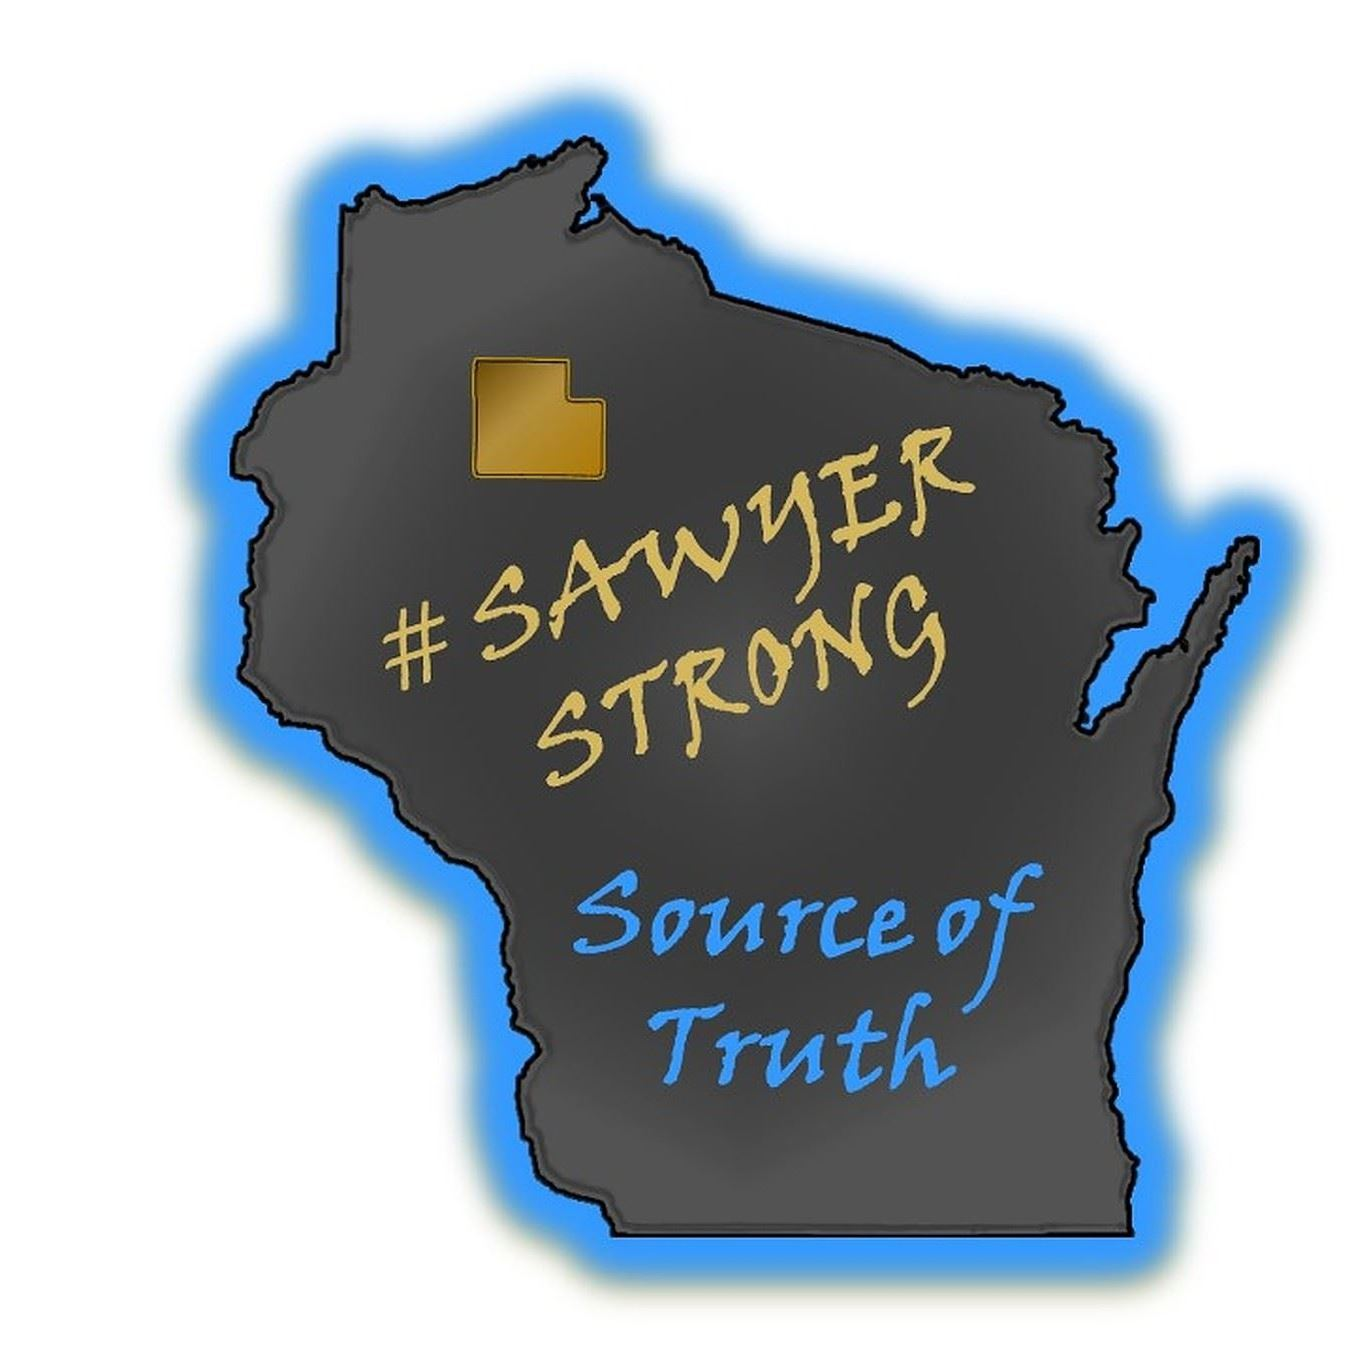 SAWYER STRONG _ Source of Truth